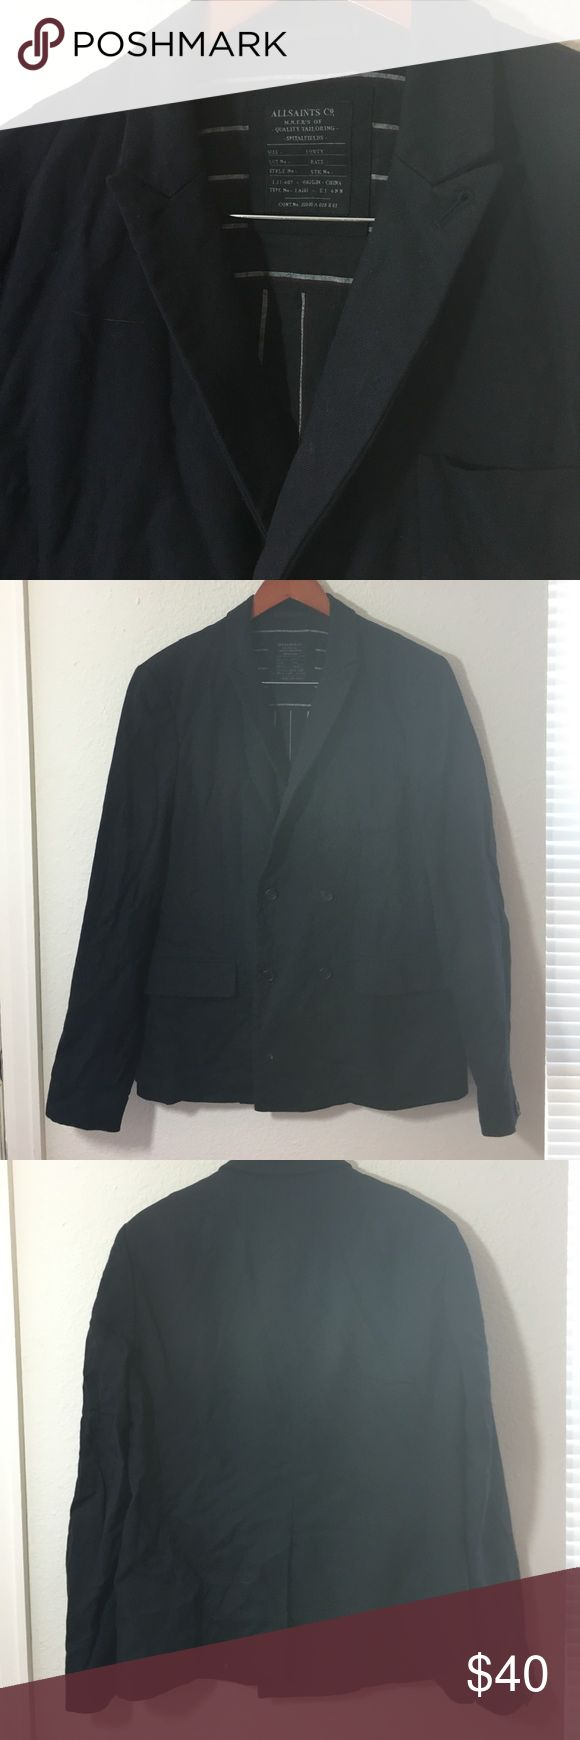 All Saints double breasted blazer Nicely made double breasted men's blazer. Excellent condition All Saints Suits & Blazers Sport Coats & Blazers